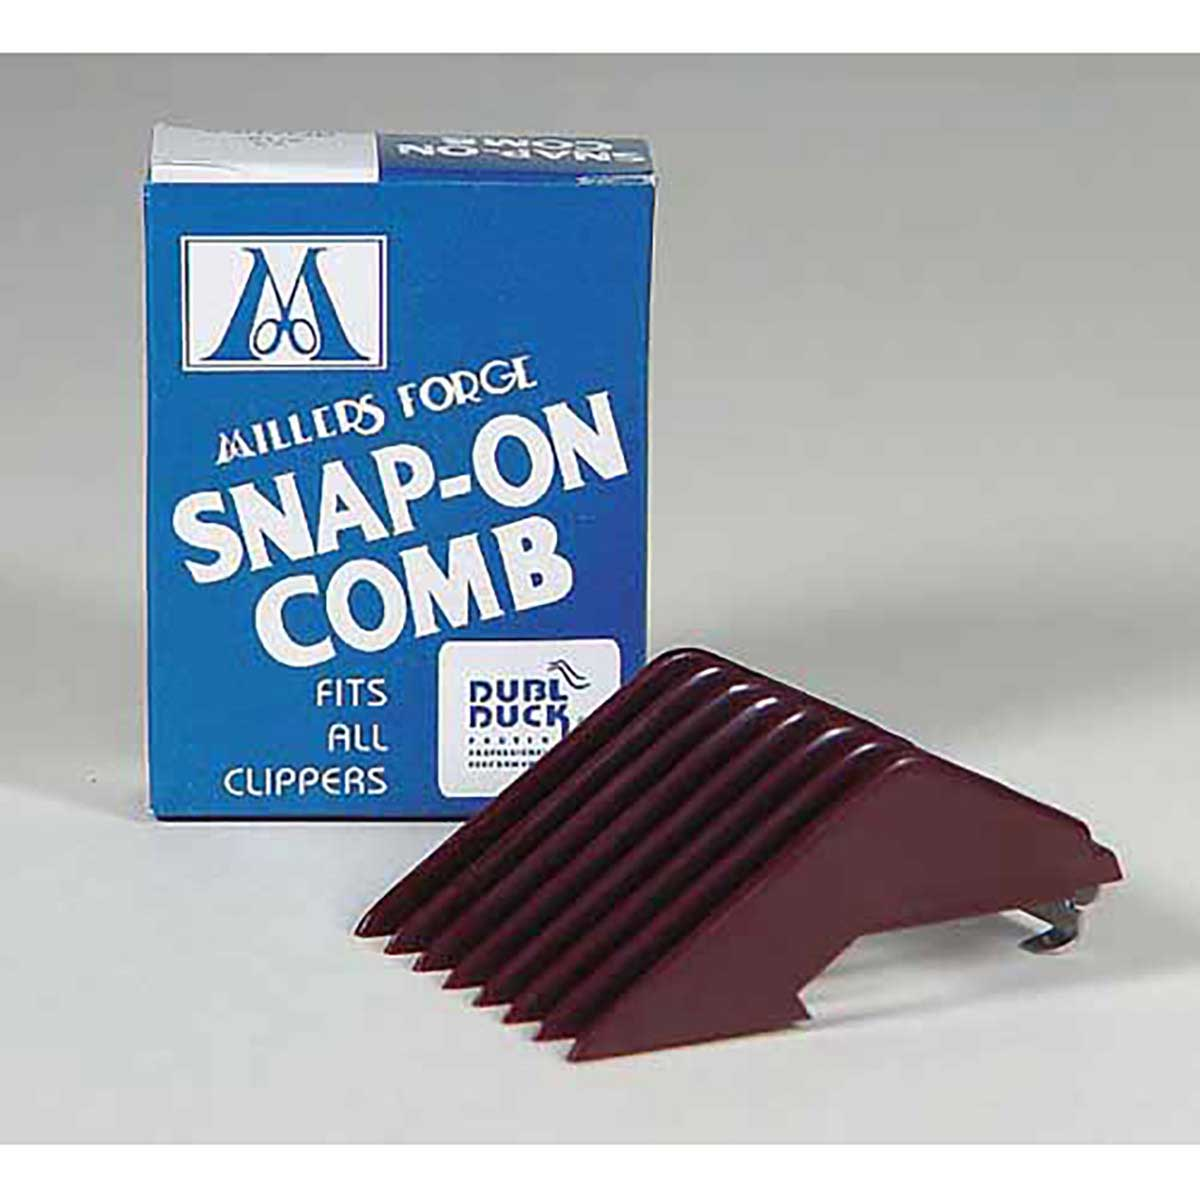 Professional Millers Forge Snap-On Comb - Size 5 Cuts 1/16 inch